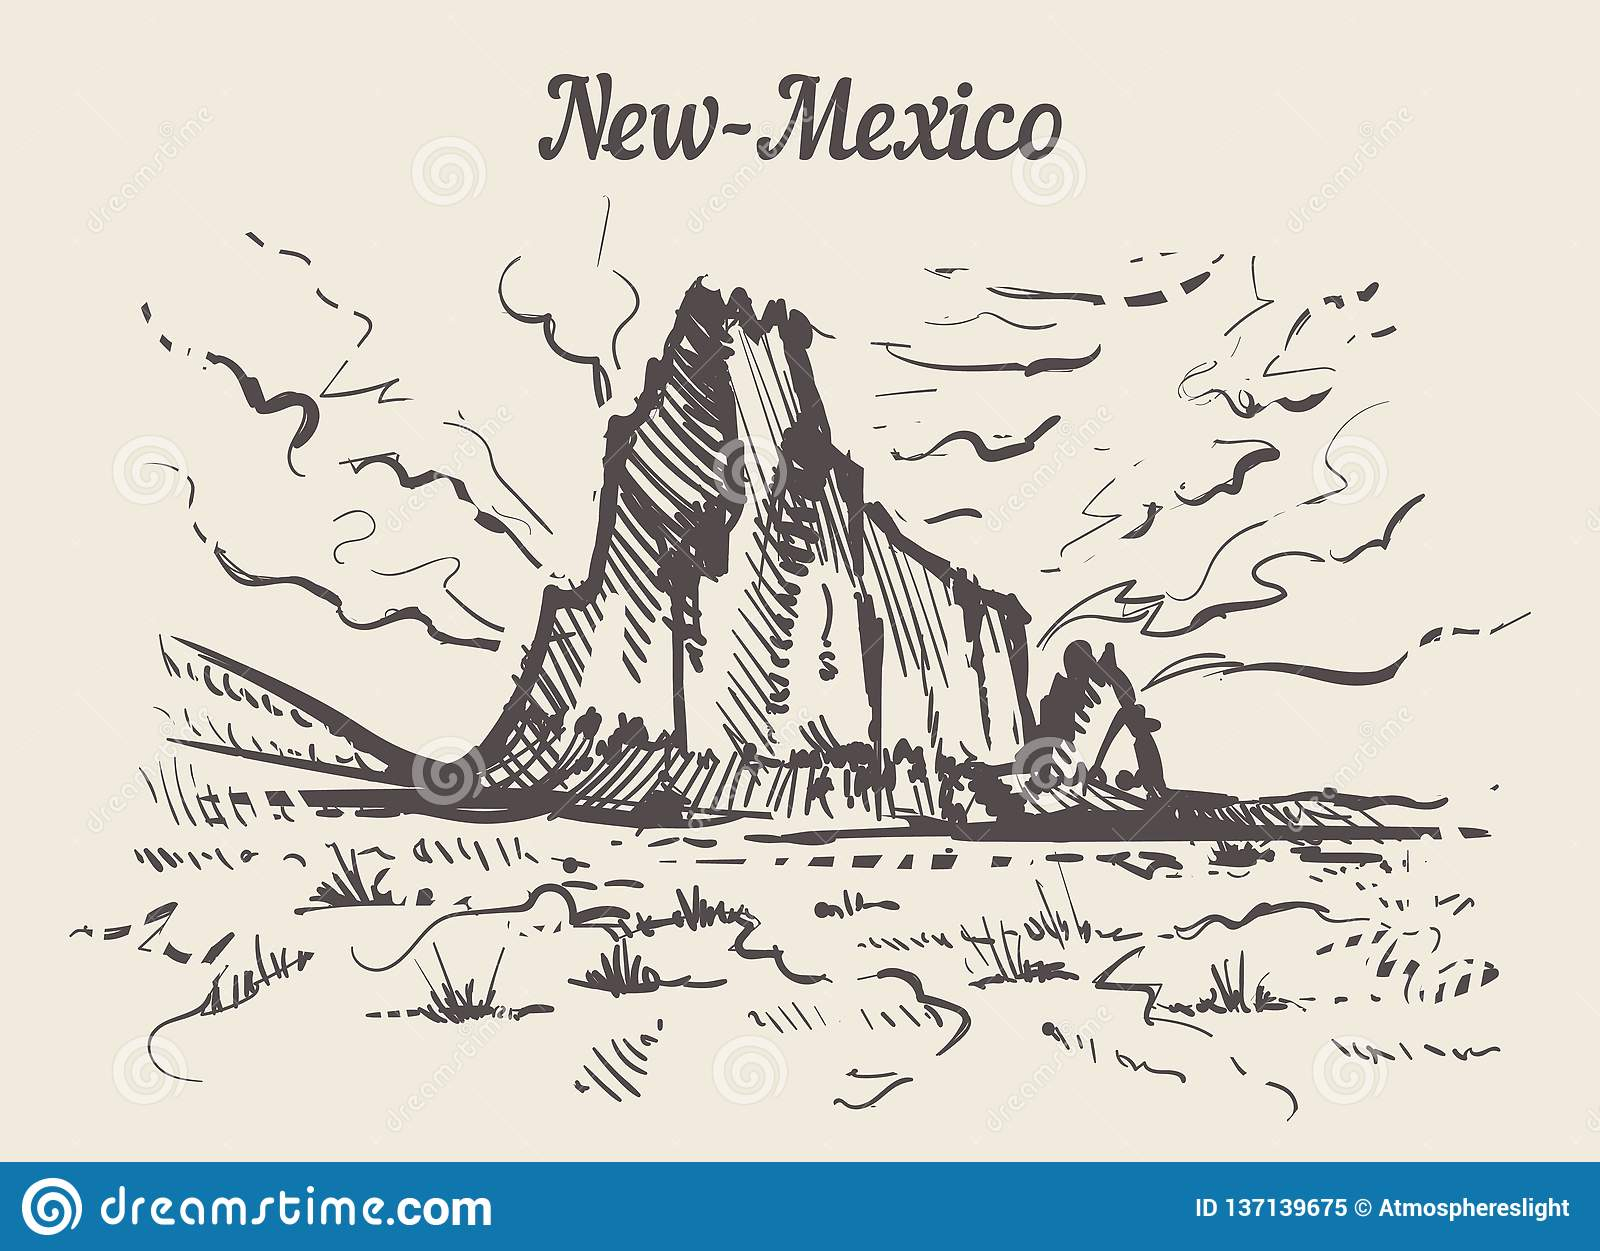 New-Mexico skyline hand drawn. New Mexico sketch style vector illustration